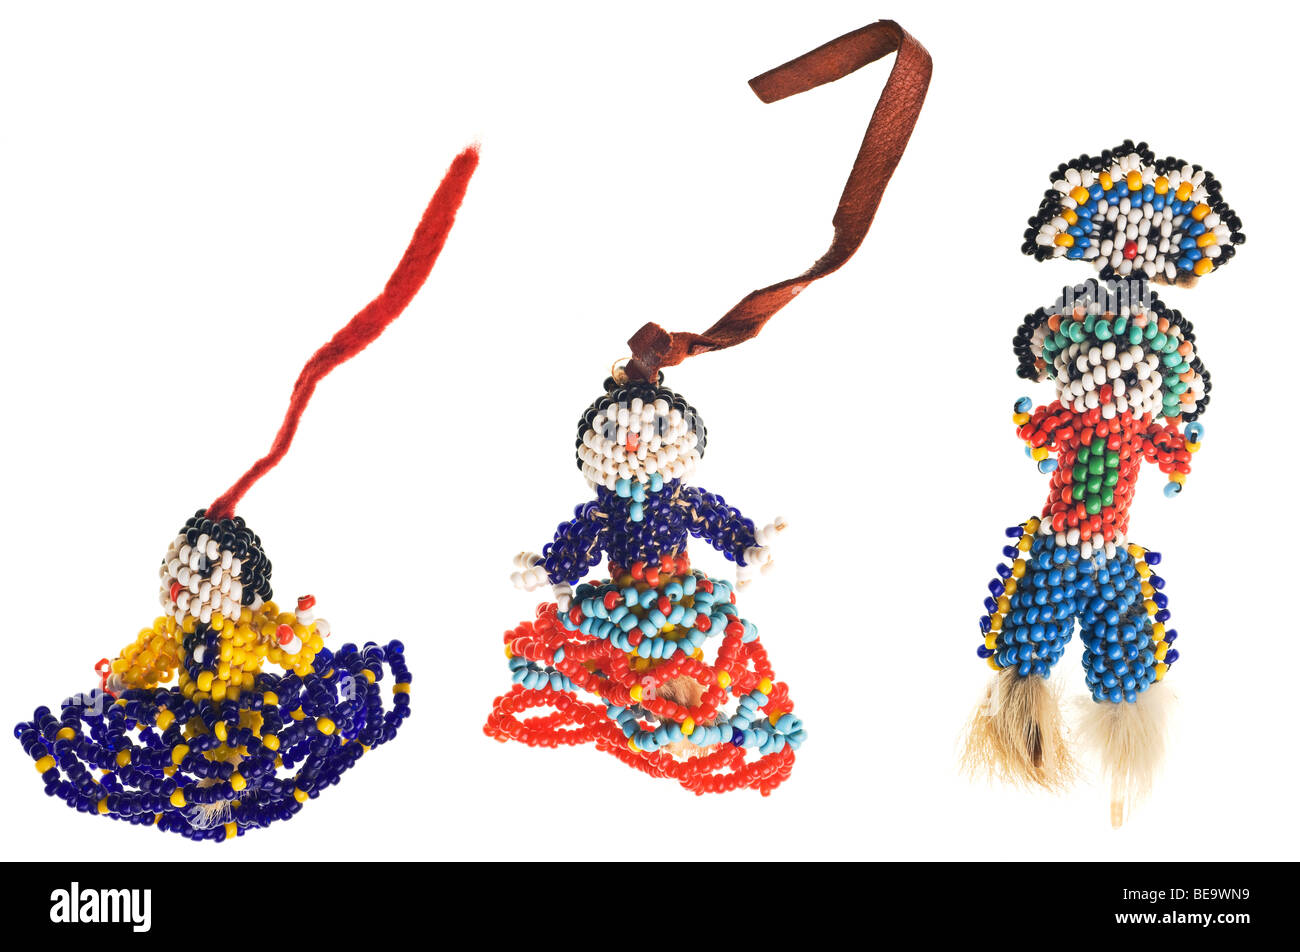 Native American Seminole handmade doll isolated on white - Stock Image